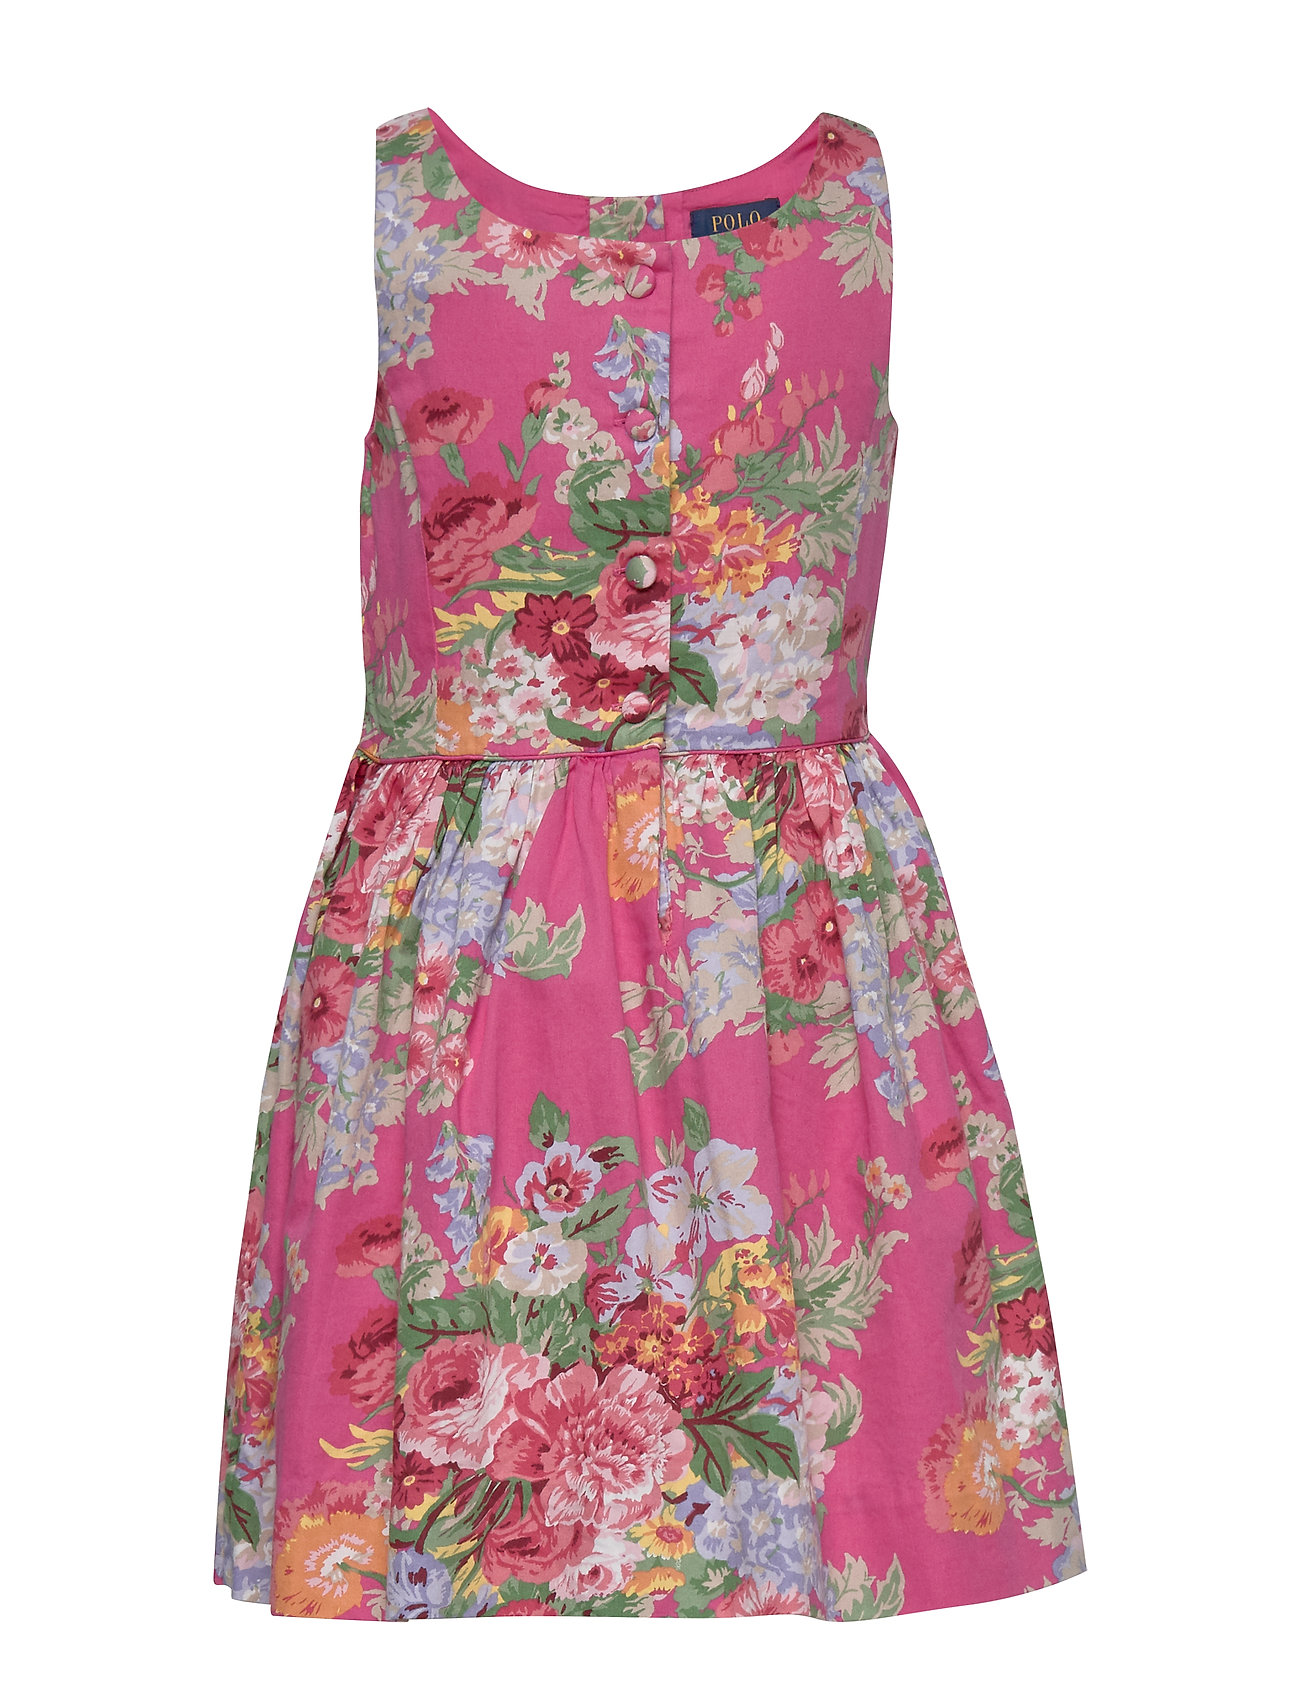 Ralph Lauren Kids Floral Cotton Sateen Dress - PINK MULTI